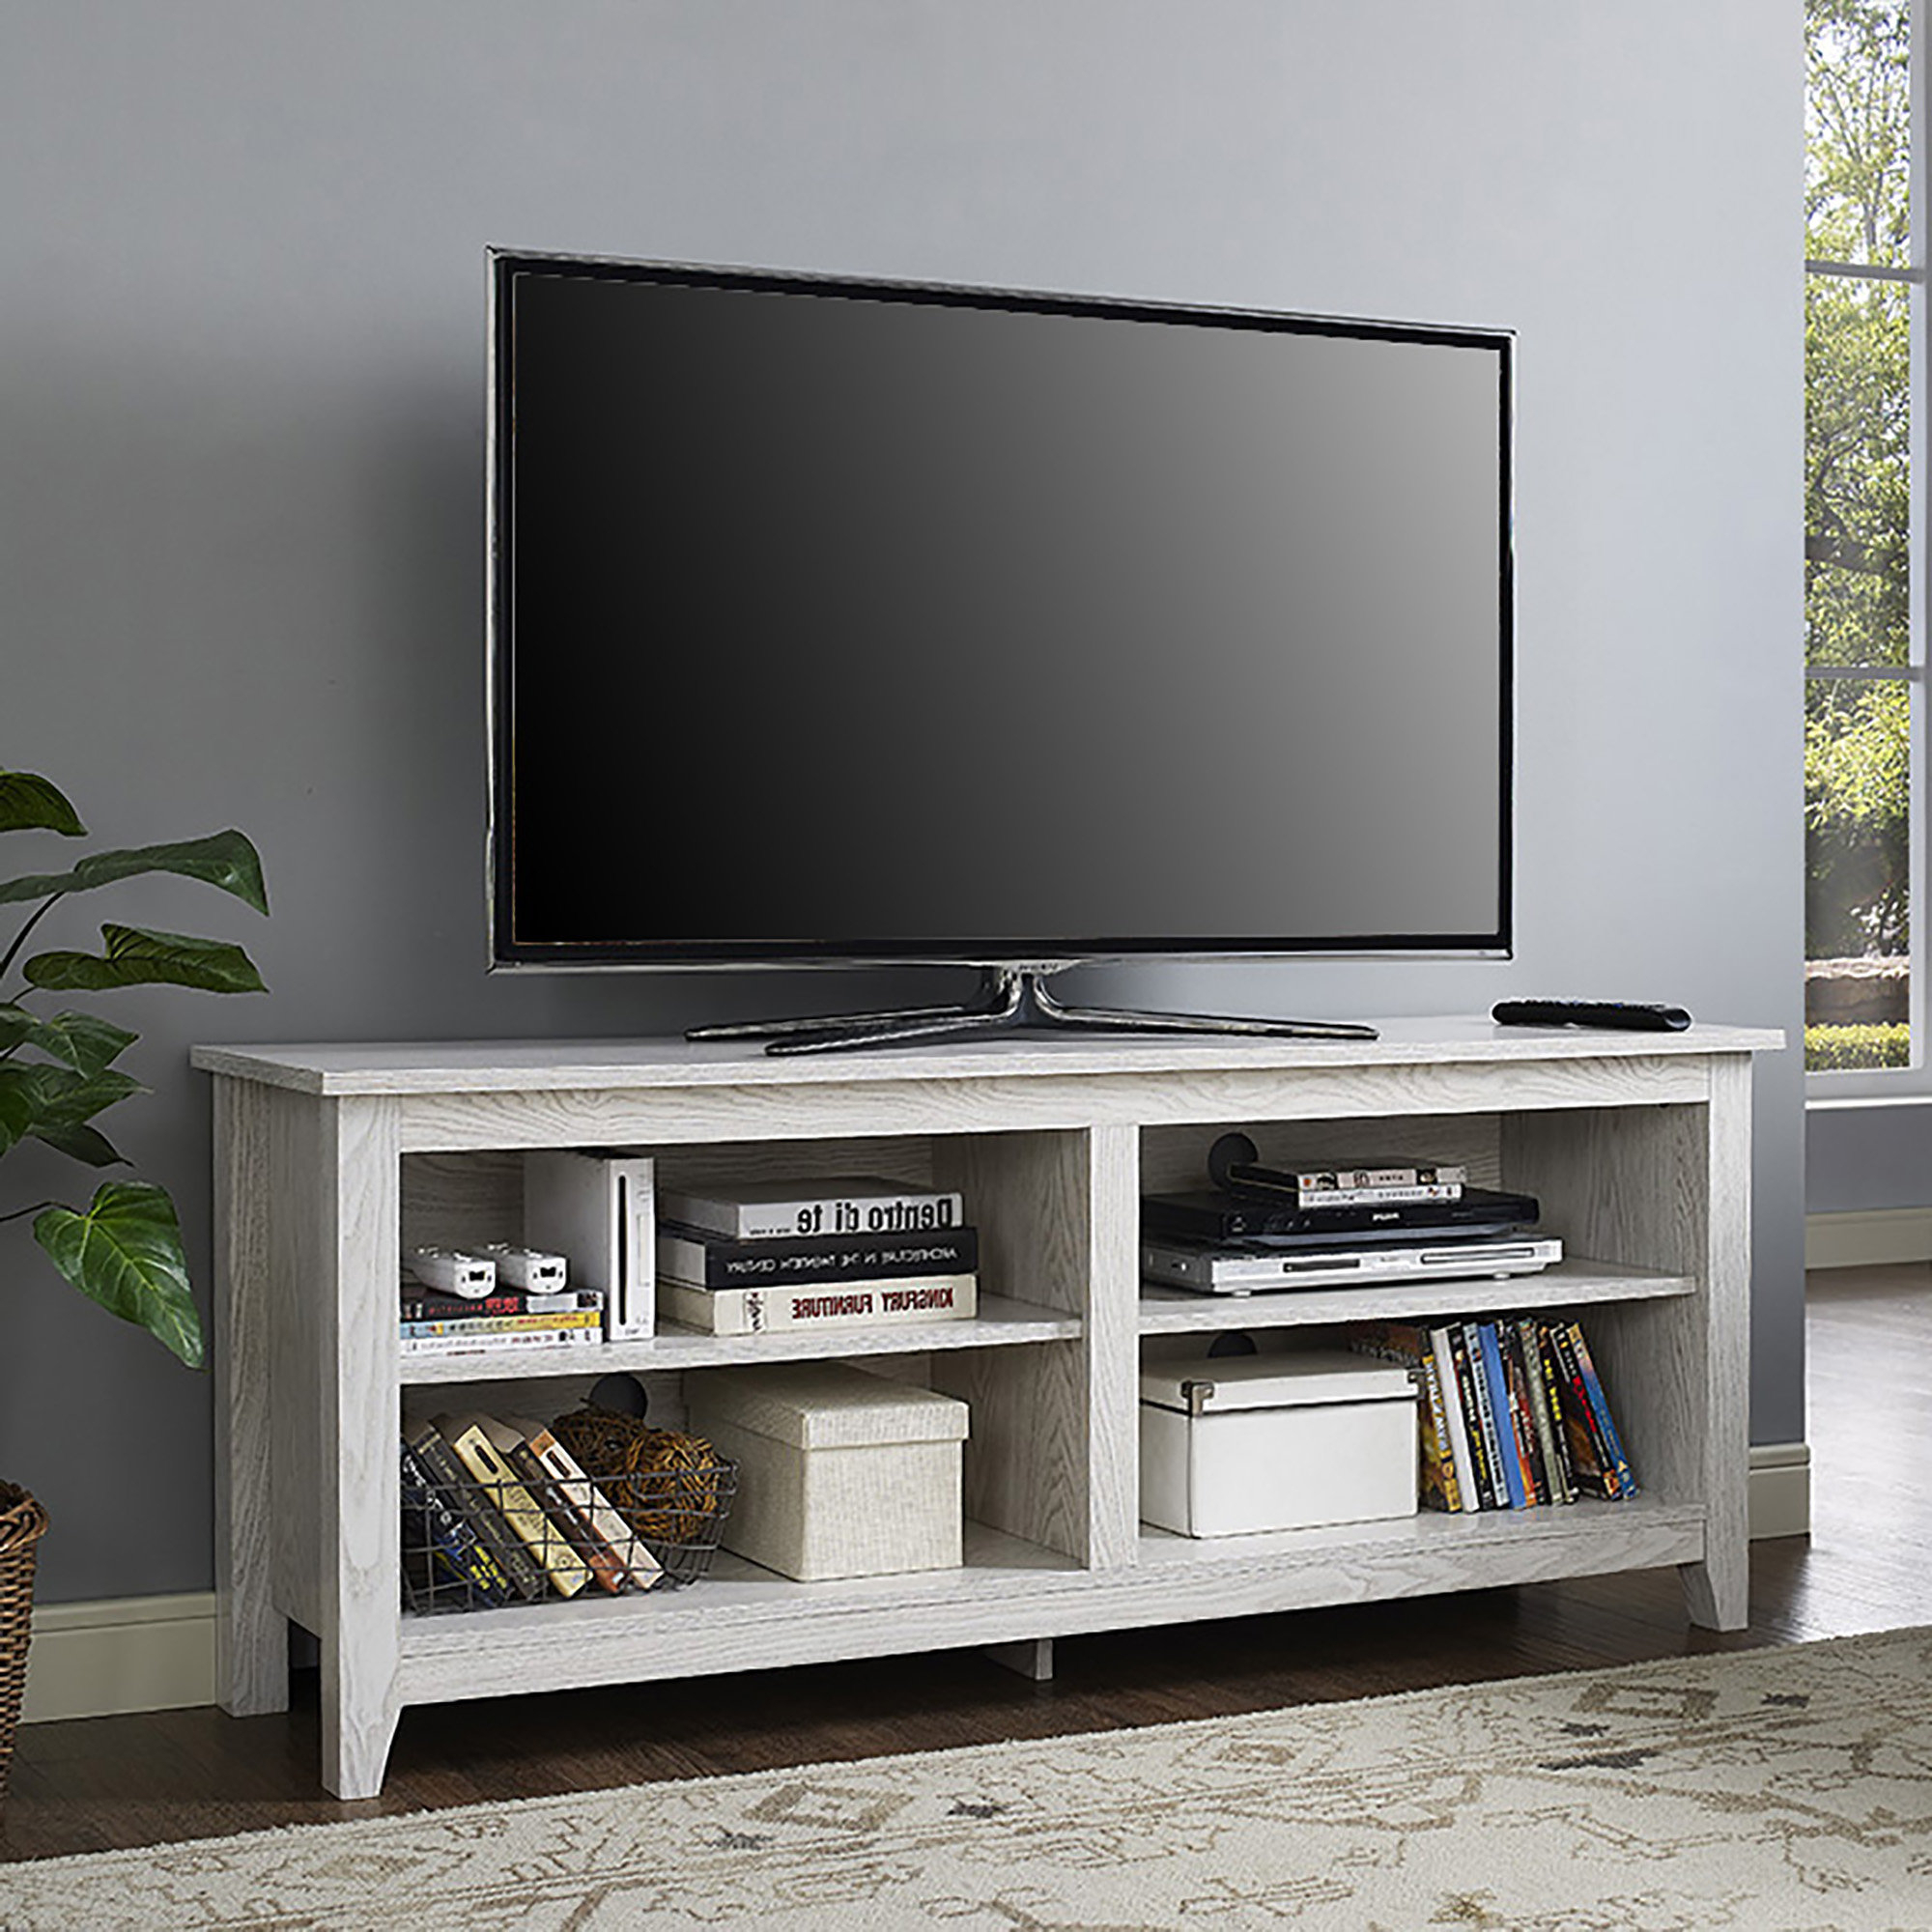 Cream Colored Tv Stands (View 5 of 20)